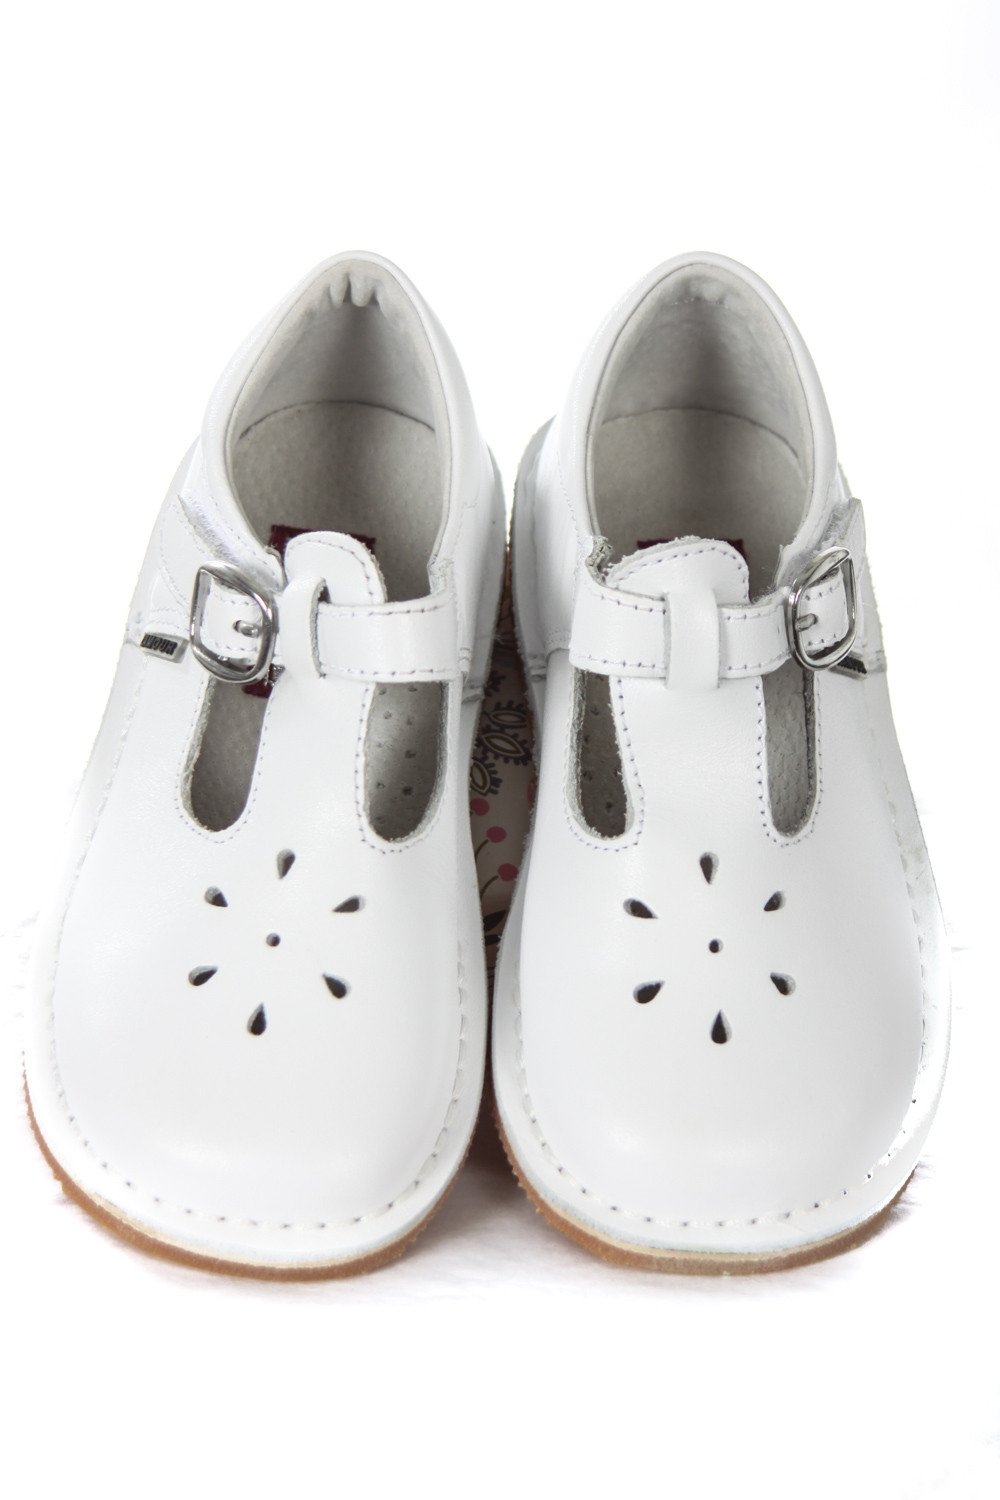 Toddler Shoes Style Guru Fashion Glitz